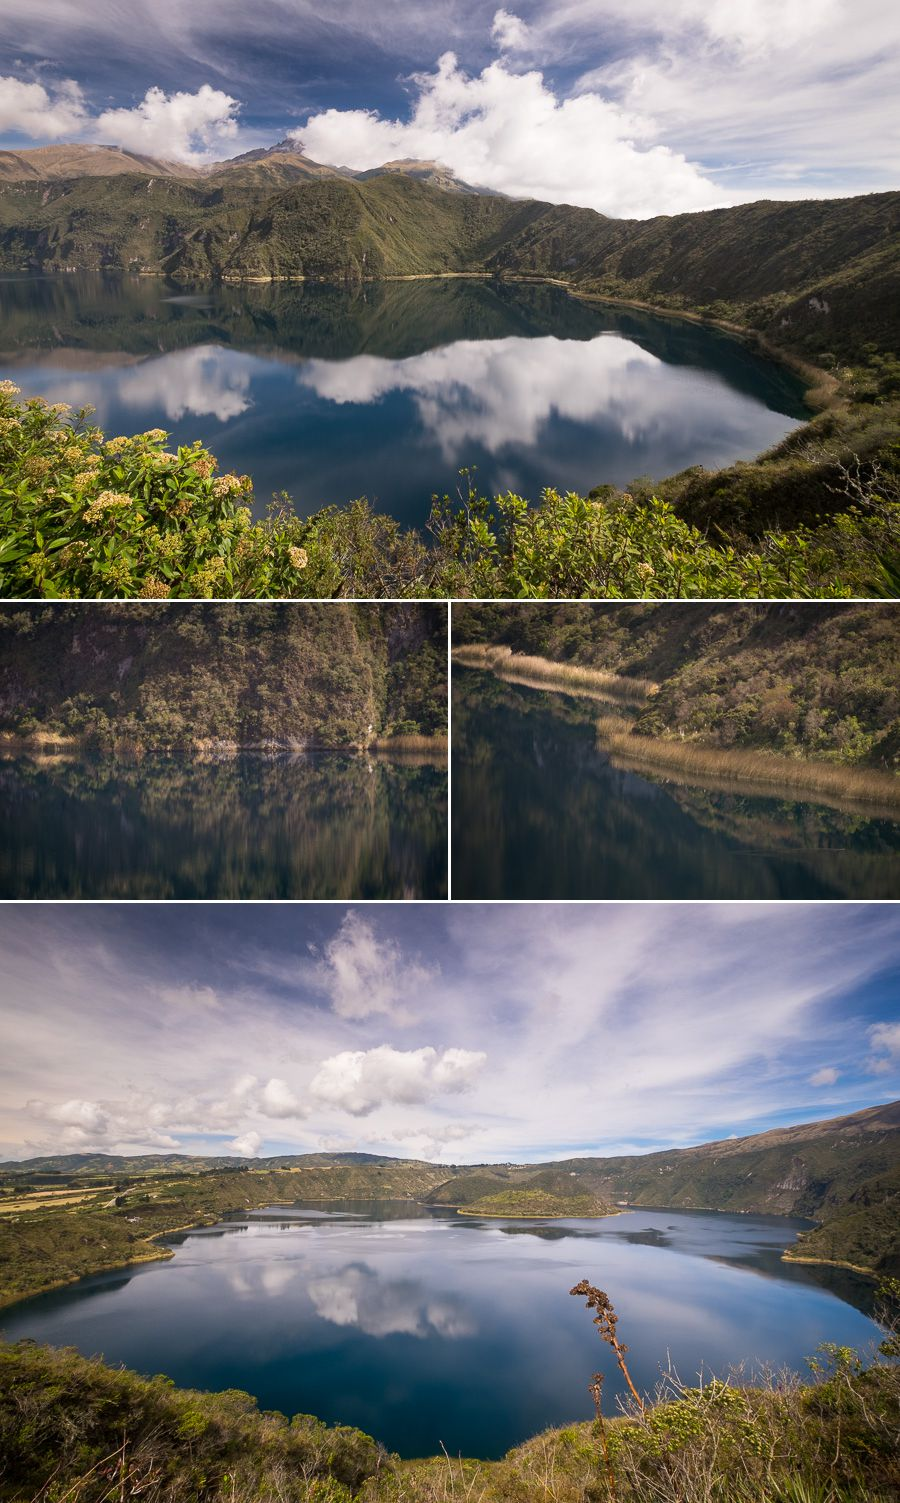 Almost perfect reflections in Laguna Cuicocha as seen while hiking the crater rim near Otavalo, Ecuador